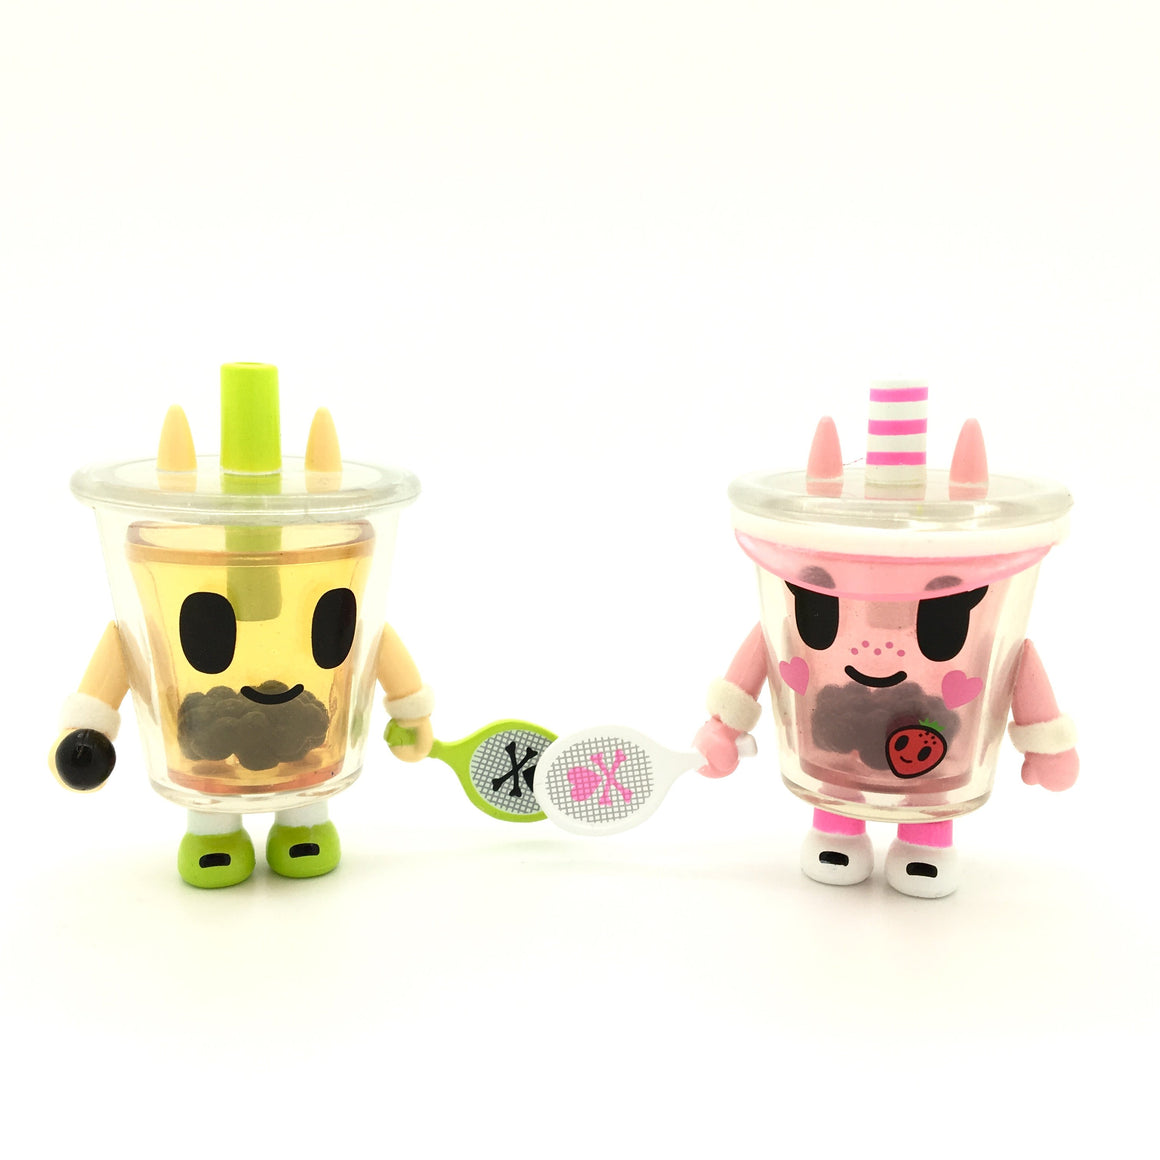 Boba Bob and Boba Betty Boba Love 2-Pack by Tokidoki